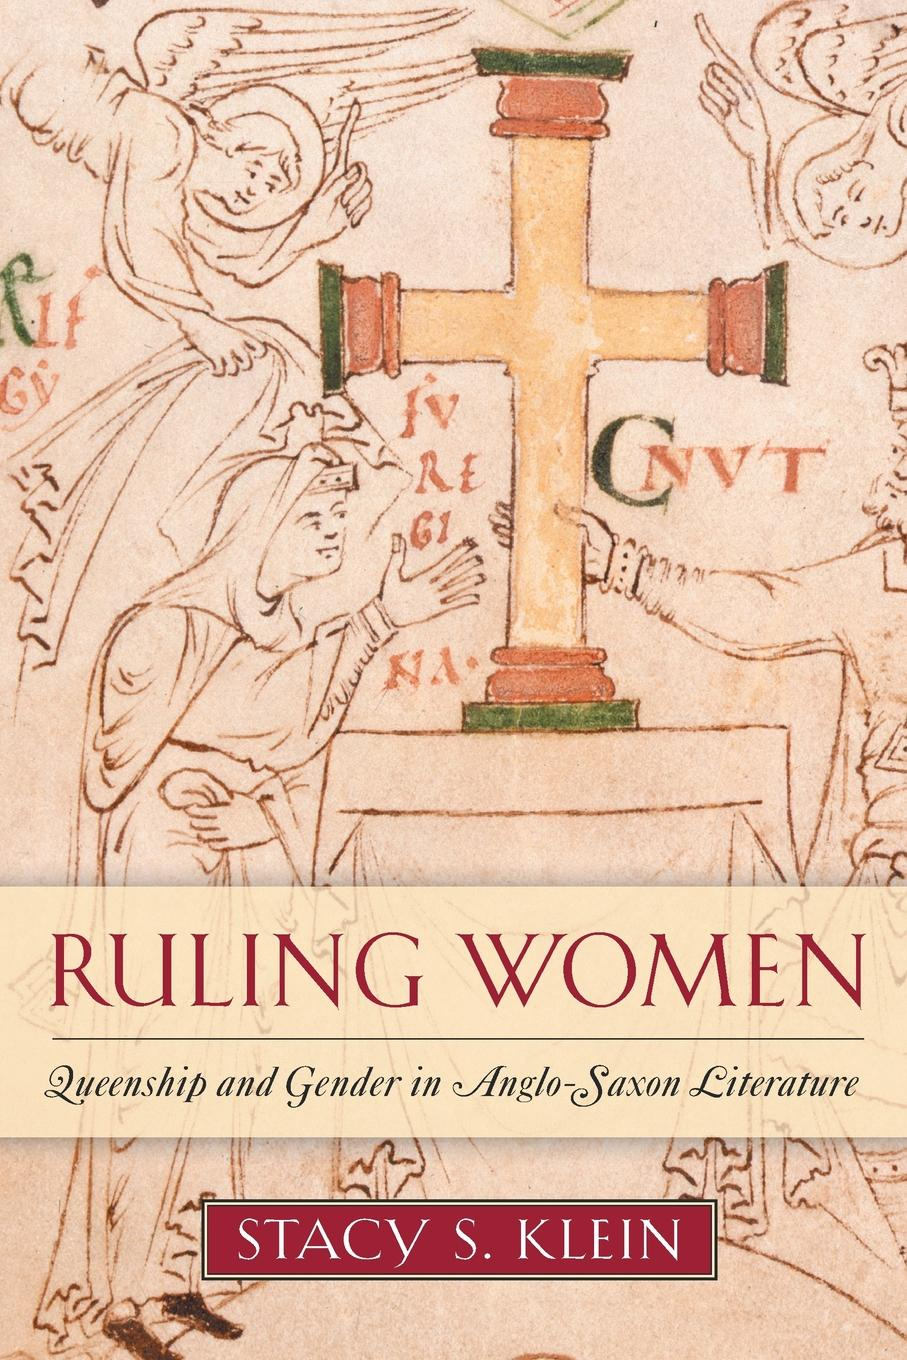 лучшая цена Stacy S. Klein Ruling Women. Queenship and Gender in Anglo-Saxon Literature